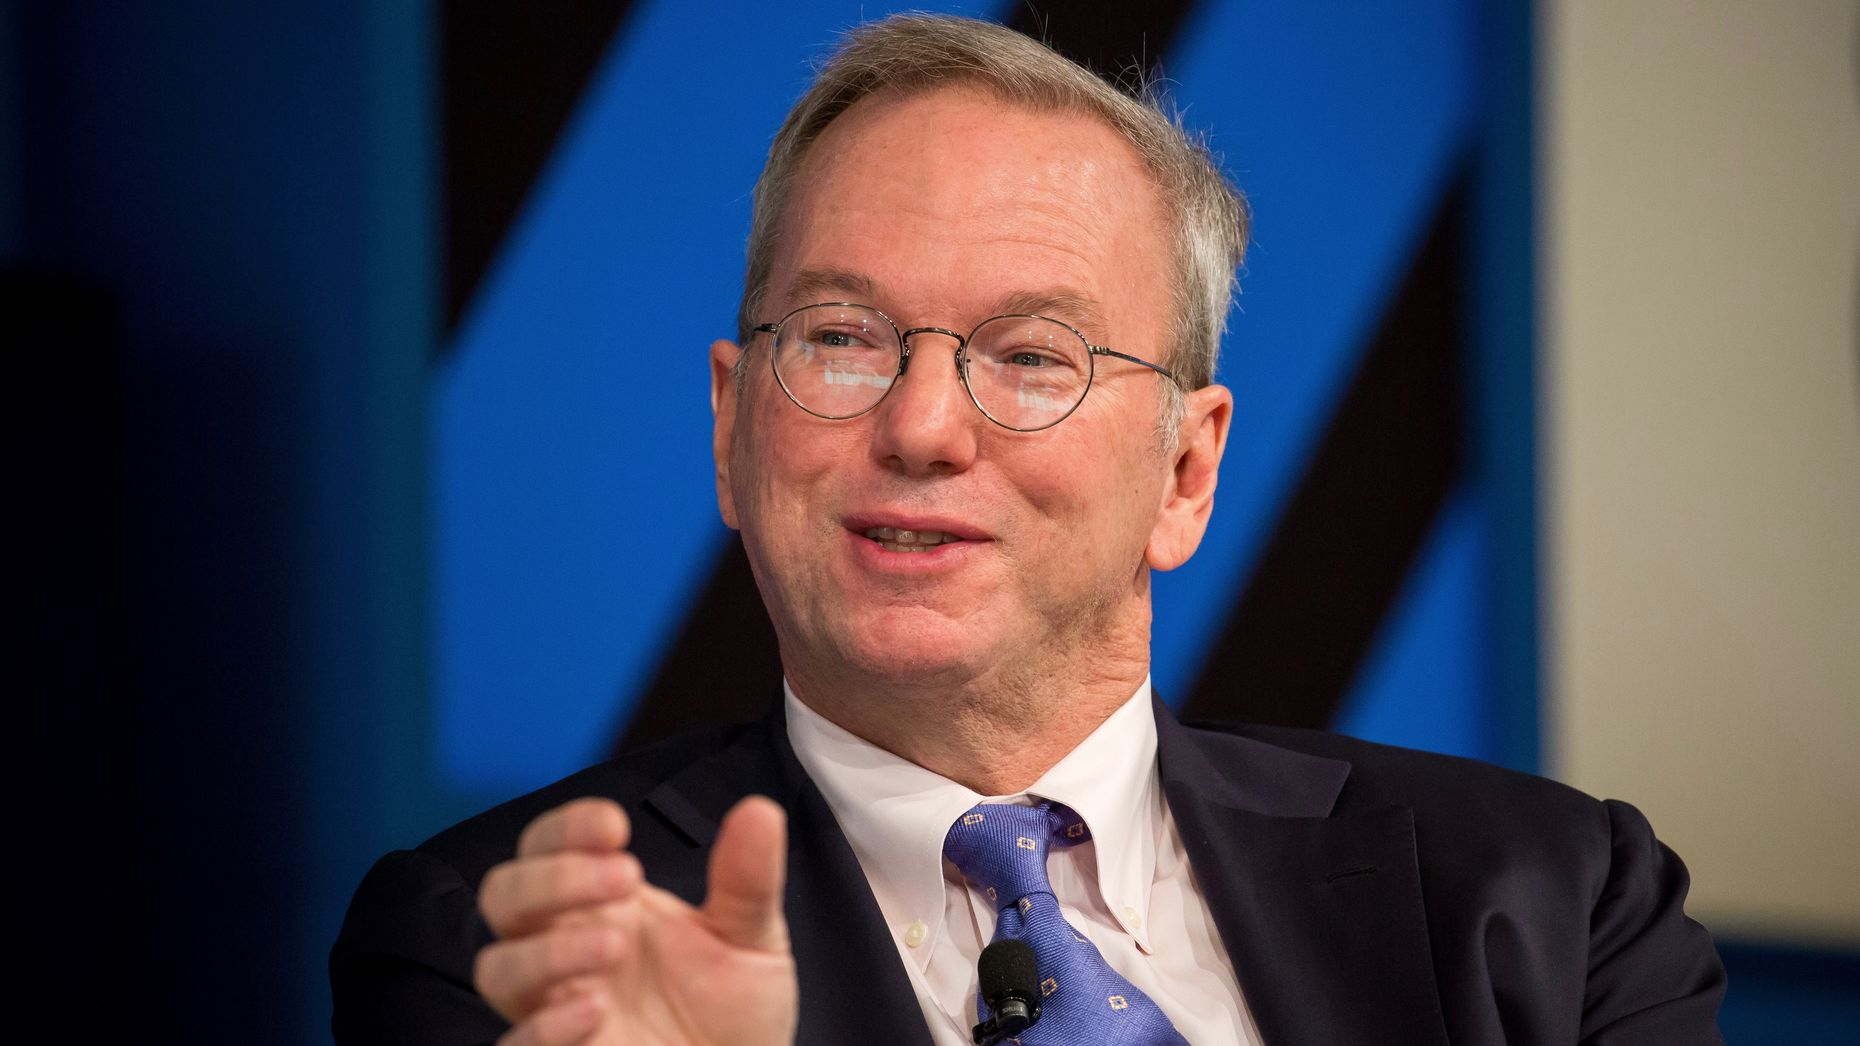 Eric Schmidt, executive chairman of Alphabet. Photo by Bloomberg.